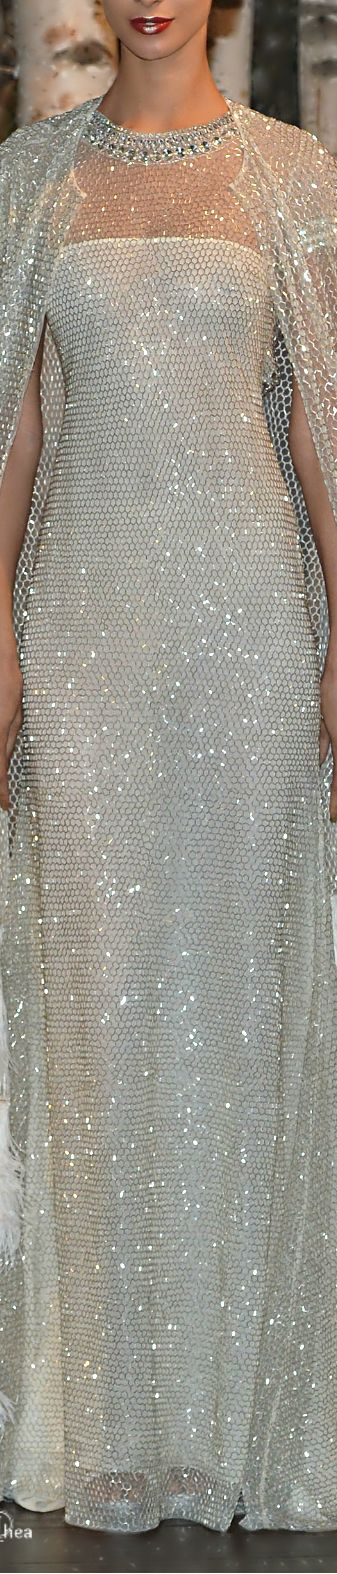 Naeem Khan Bridal Spring 2015--Cape with Feather Trim!                                                                                                                                                      More